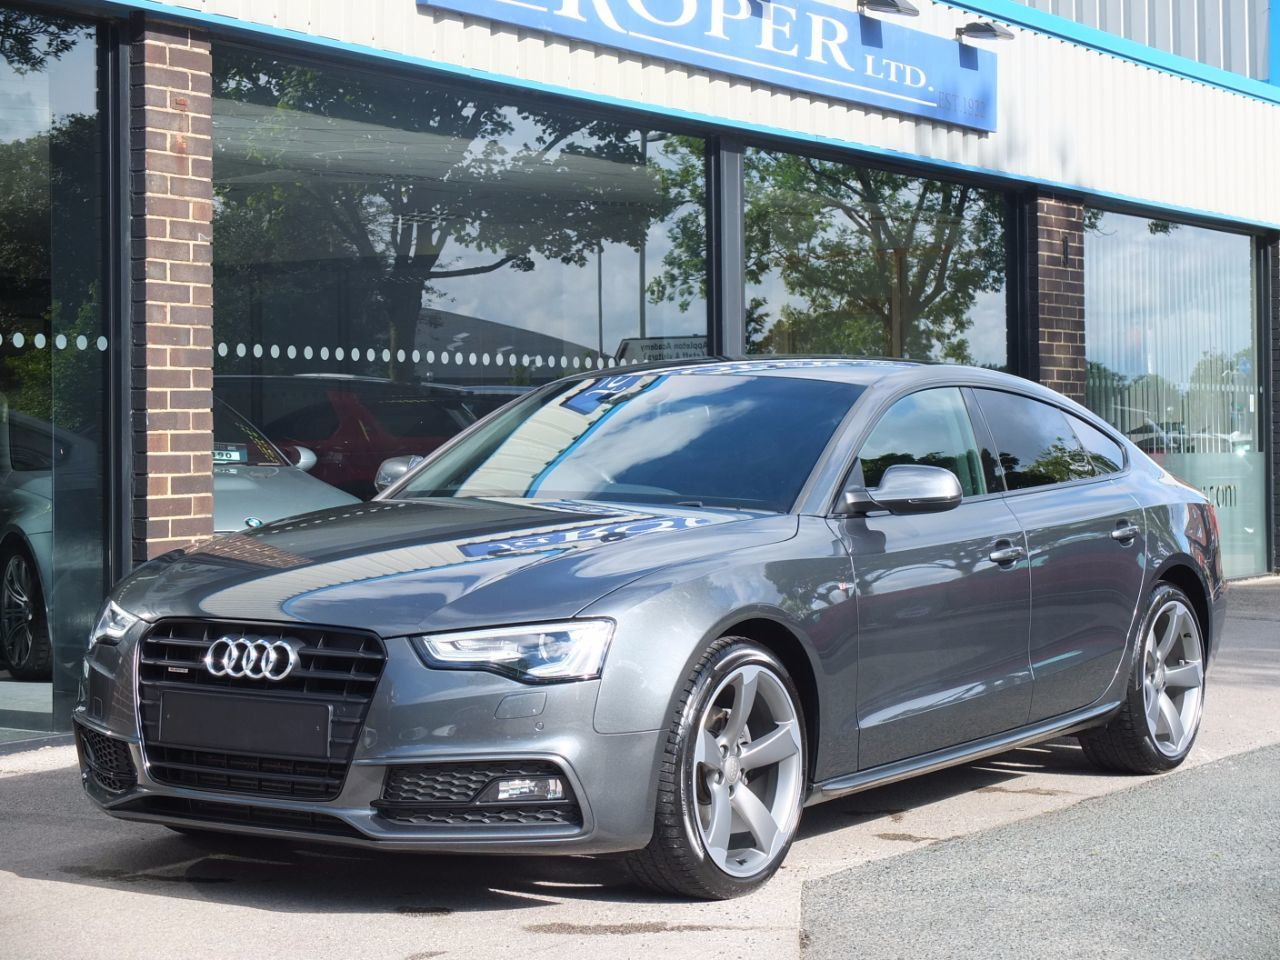 Used Cars Bradford, Second Hand Cars West Yorkshire - fa ...